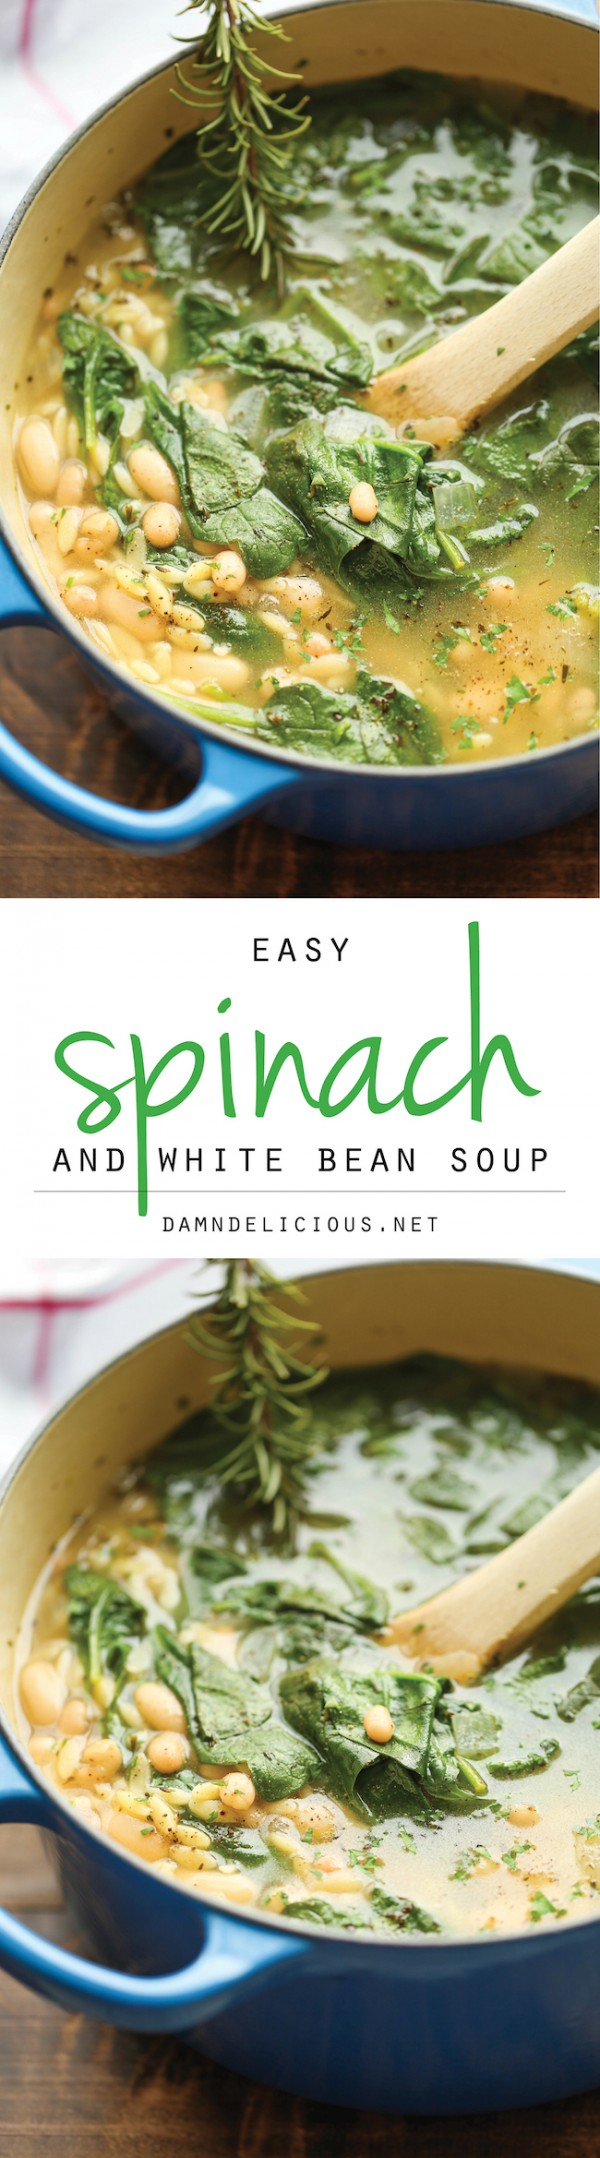 Get the recipe Spinach and White Bean Soup @recipes_to_go